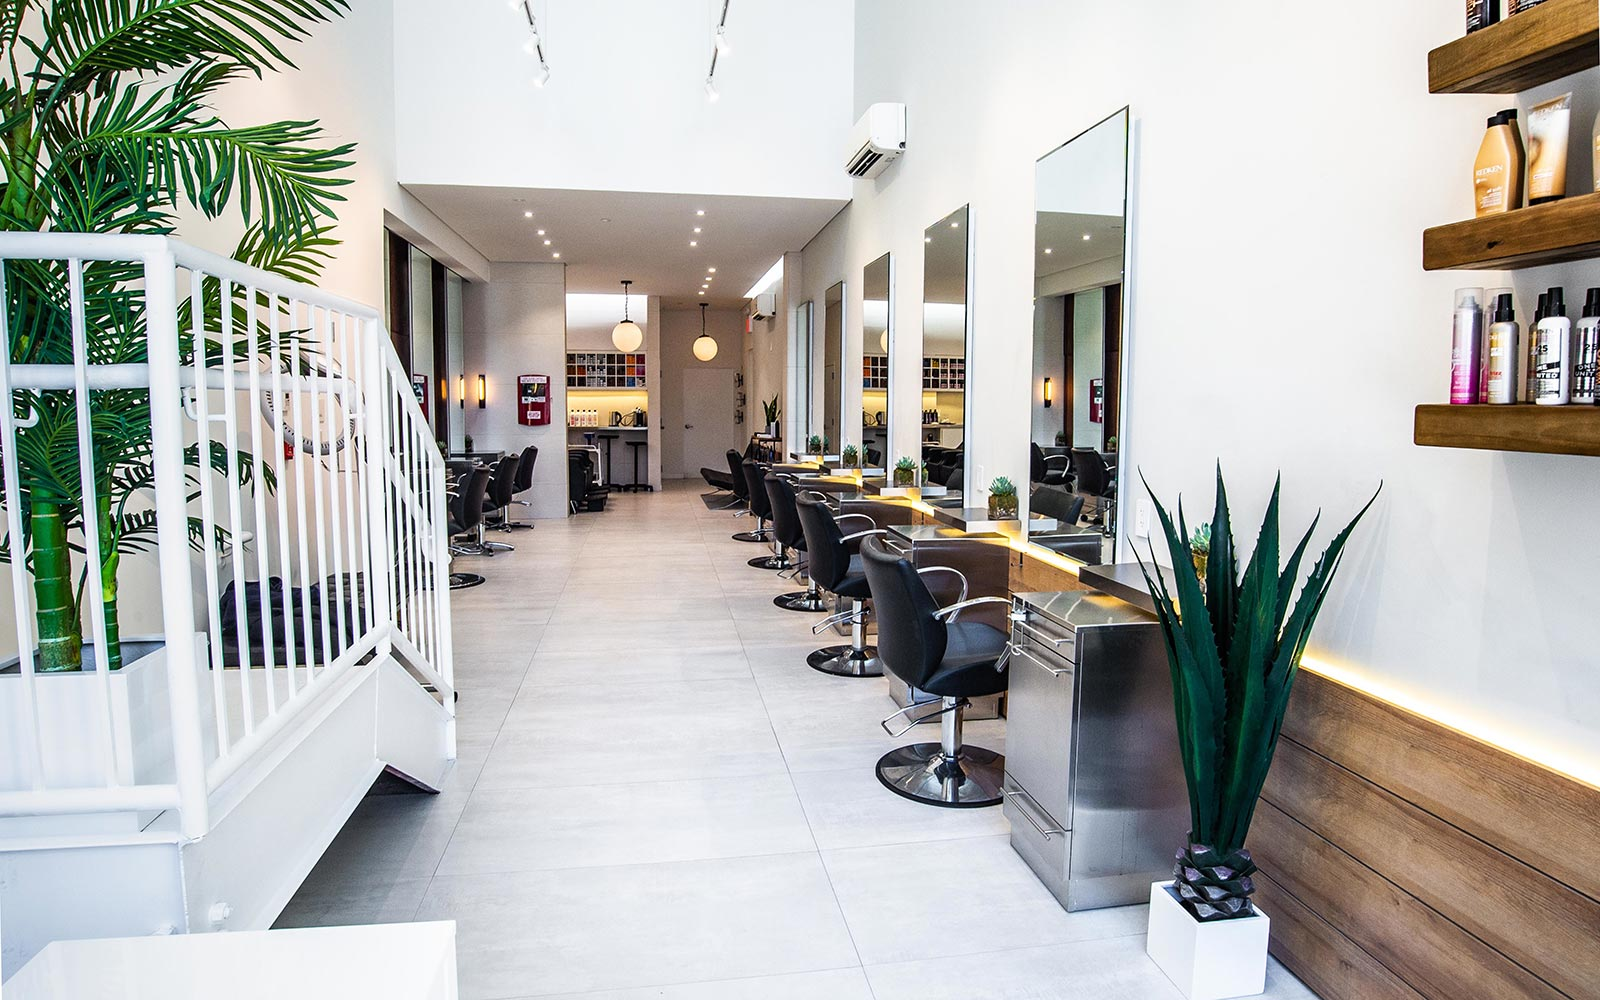 This NYC Hotel Just Opened a Hair Salon So You Never Have to Leave With Bed Head